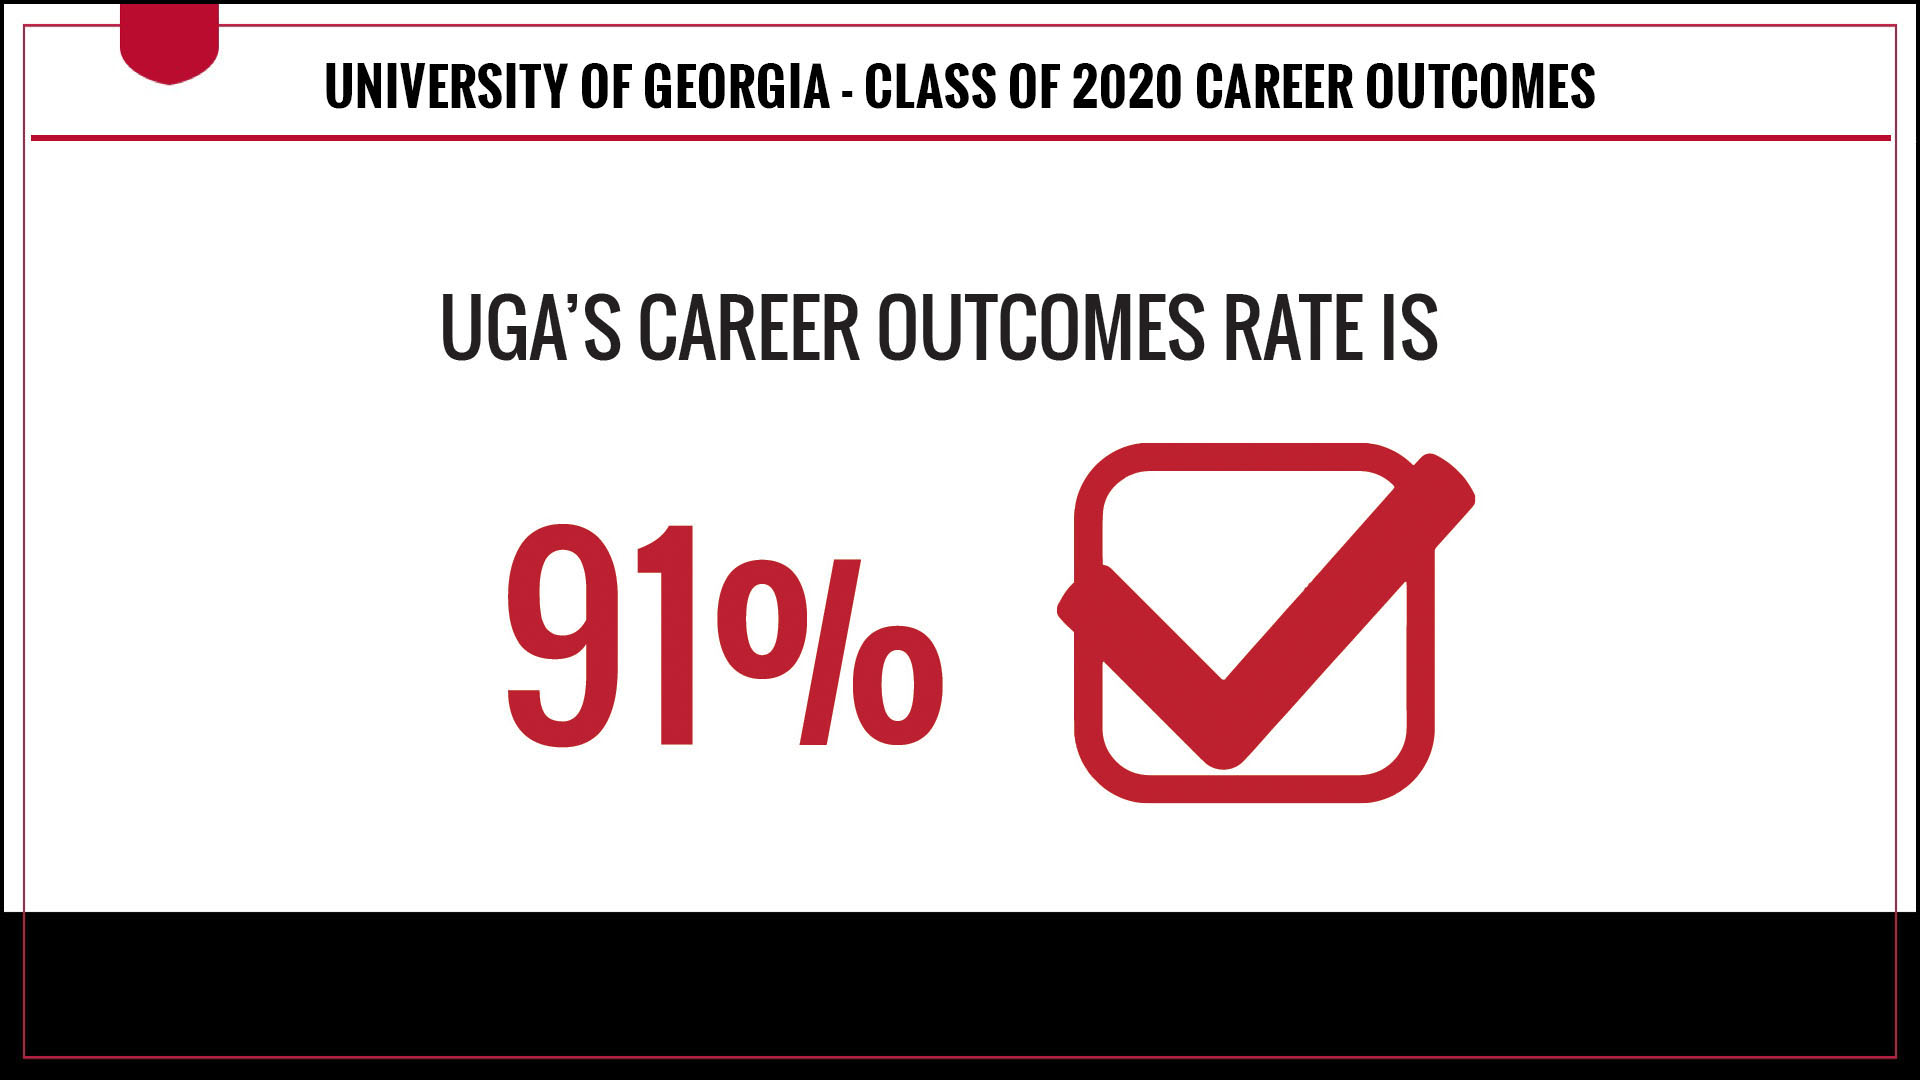 UGA's Career Outcomes rate is 91 percent